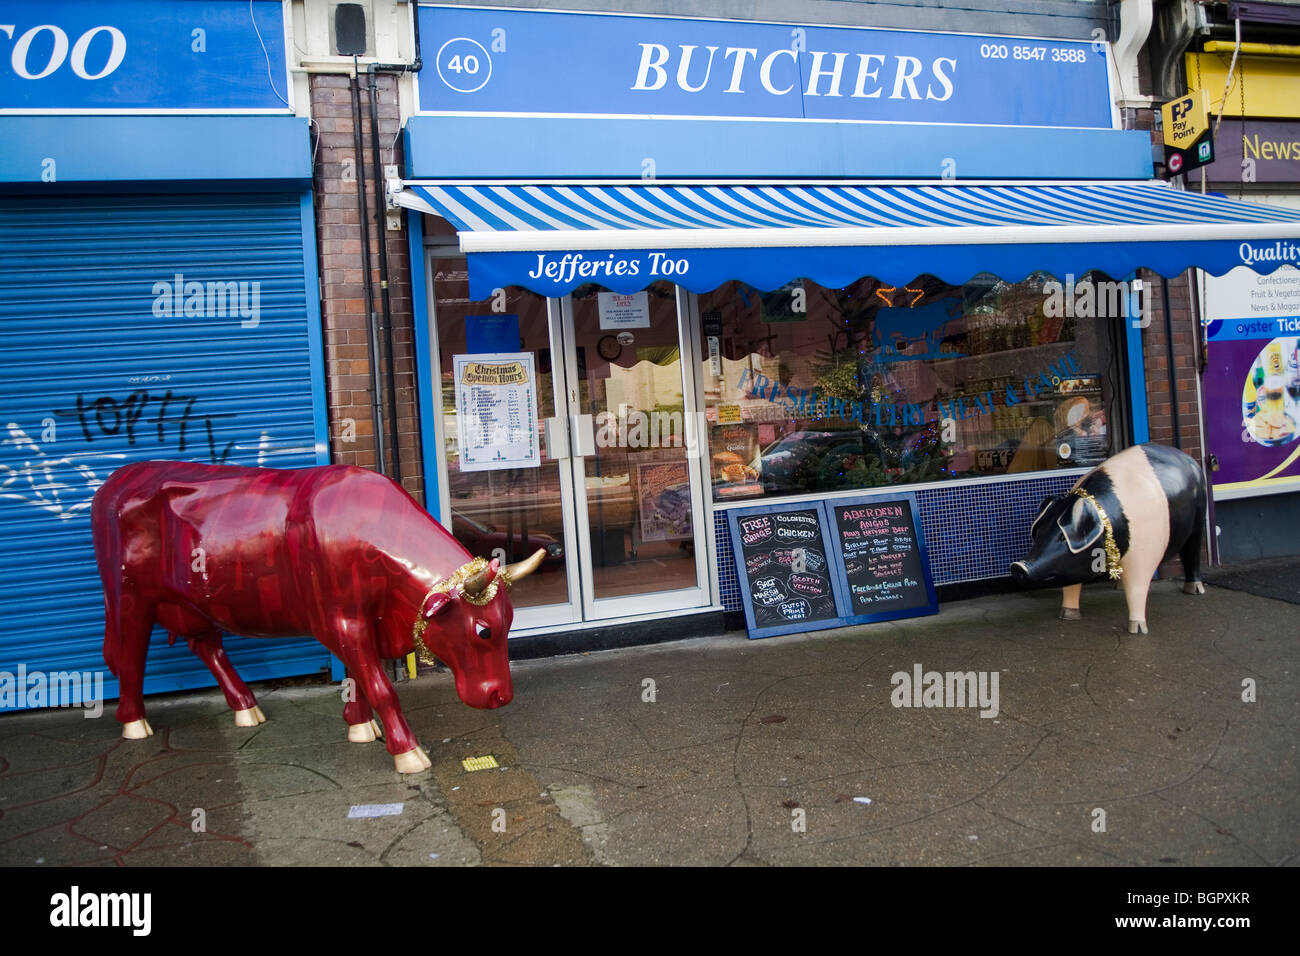 Butchers shop with animals in front of the shop London, England, Britain, UK - Stock Image